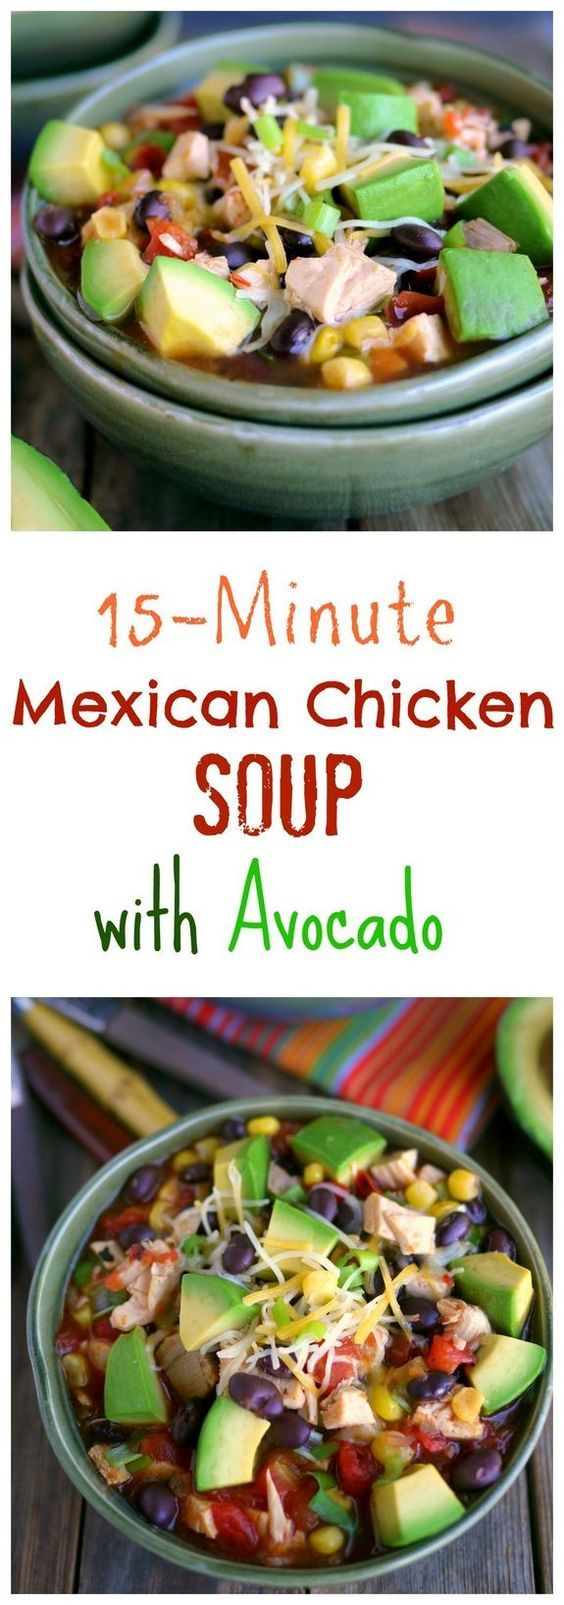 15-Minute Mexican Chicken Soup with Avocado from NoblePig.com.: